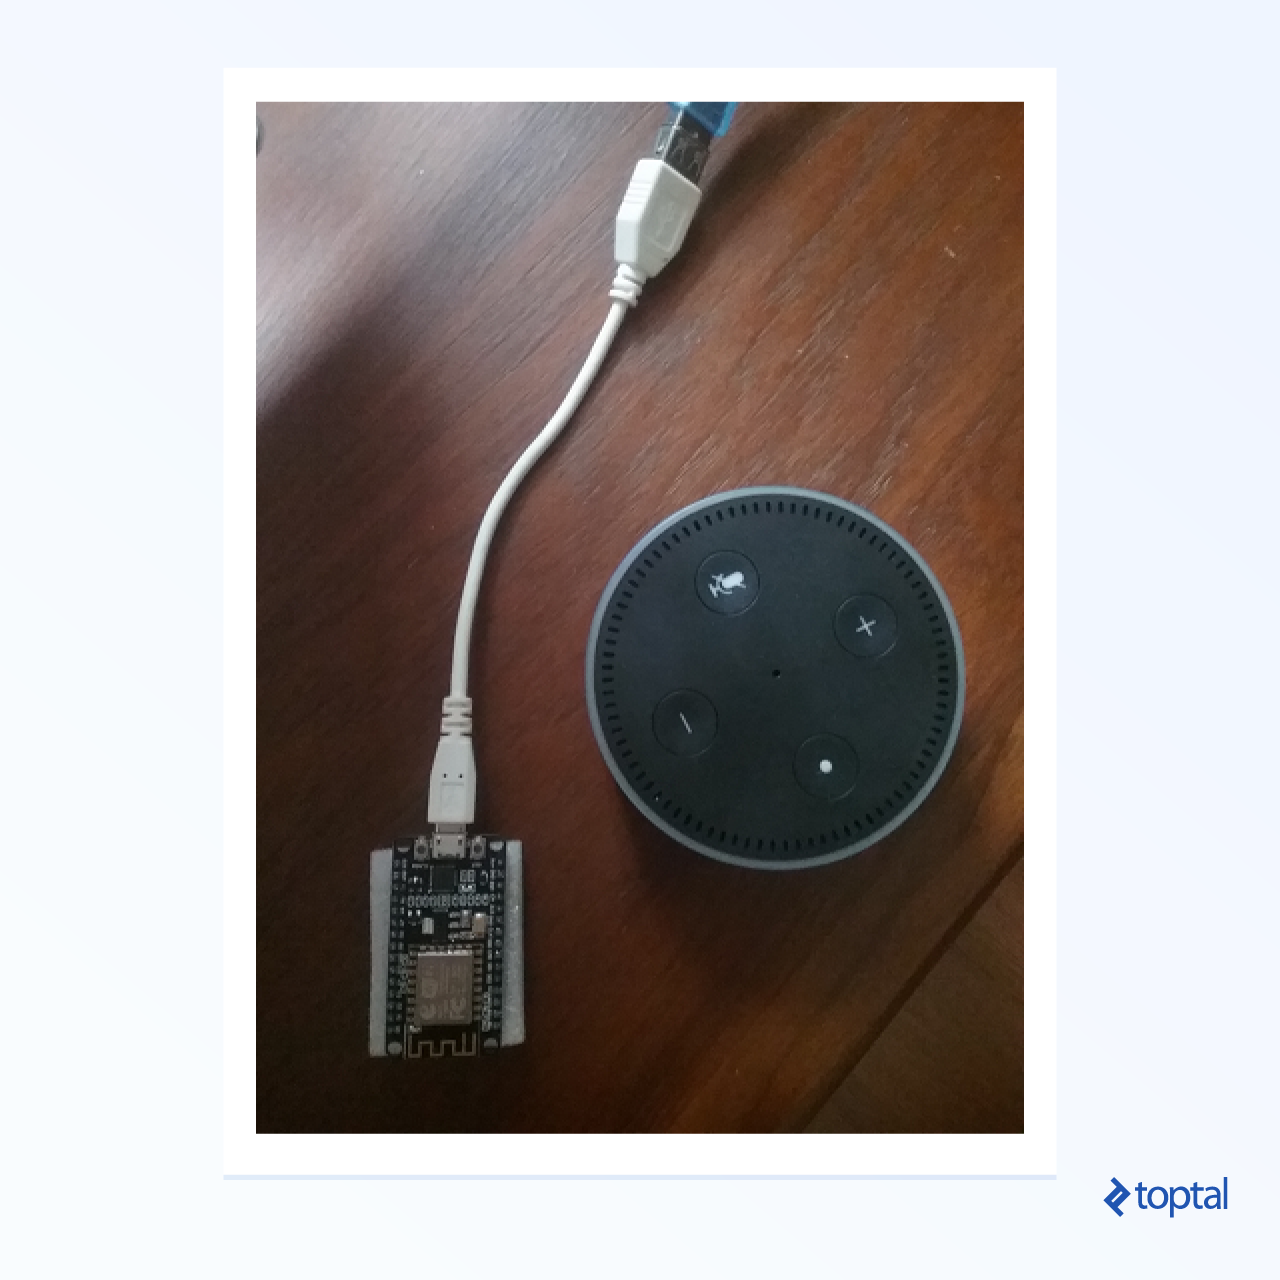 ESP8266 Arduino Tutorial: Hacking an Alexa | Toptal